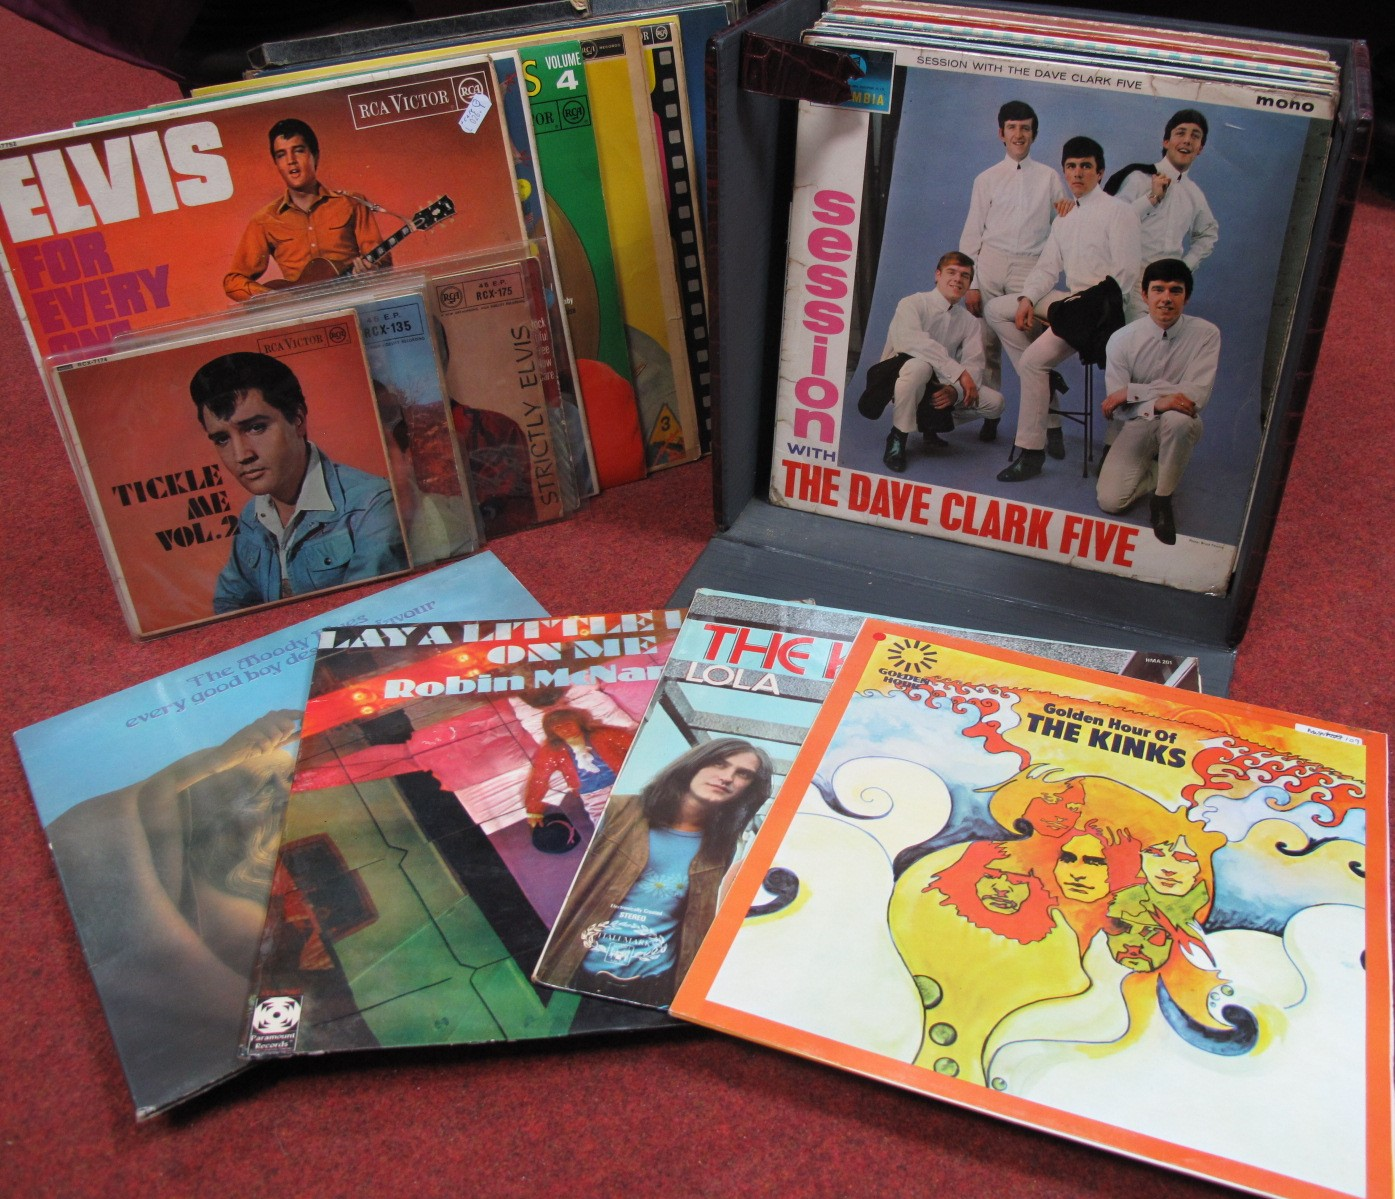 Lot 631 - Elvis Interest - A collection of LP's, EP's and box set to include Tickle Me Vol 2, For Every One,